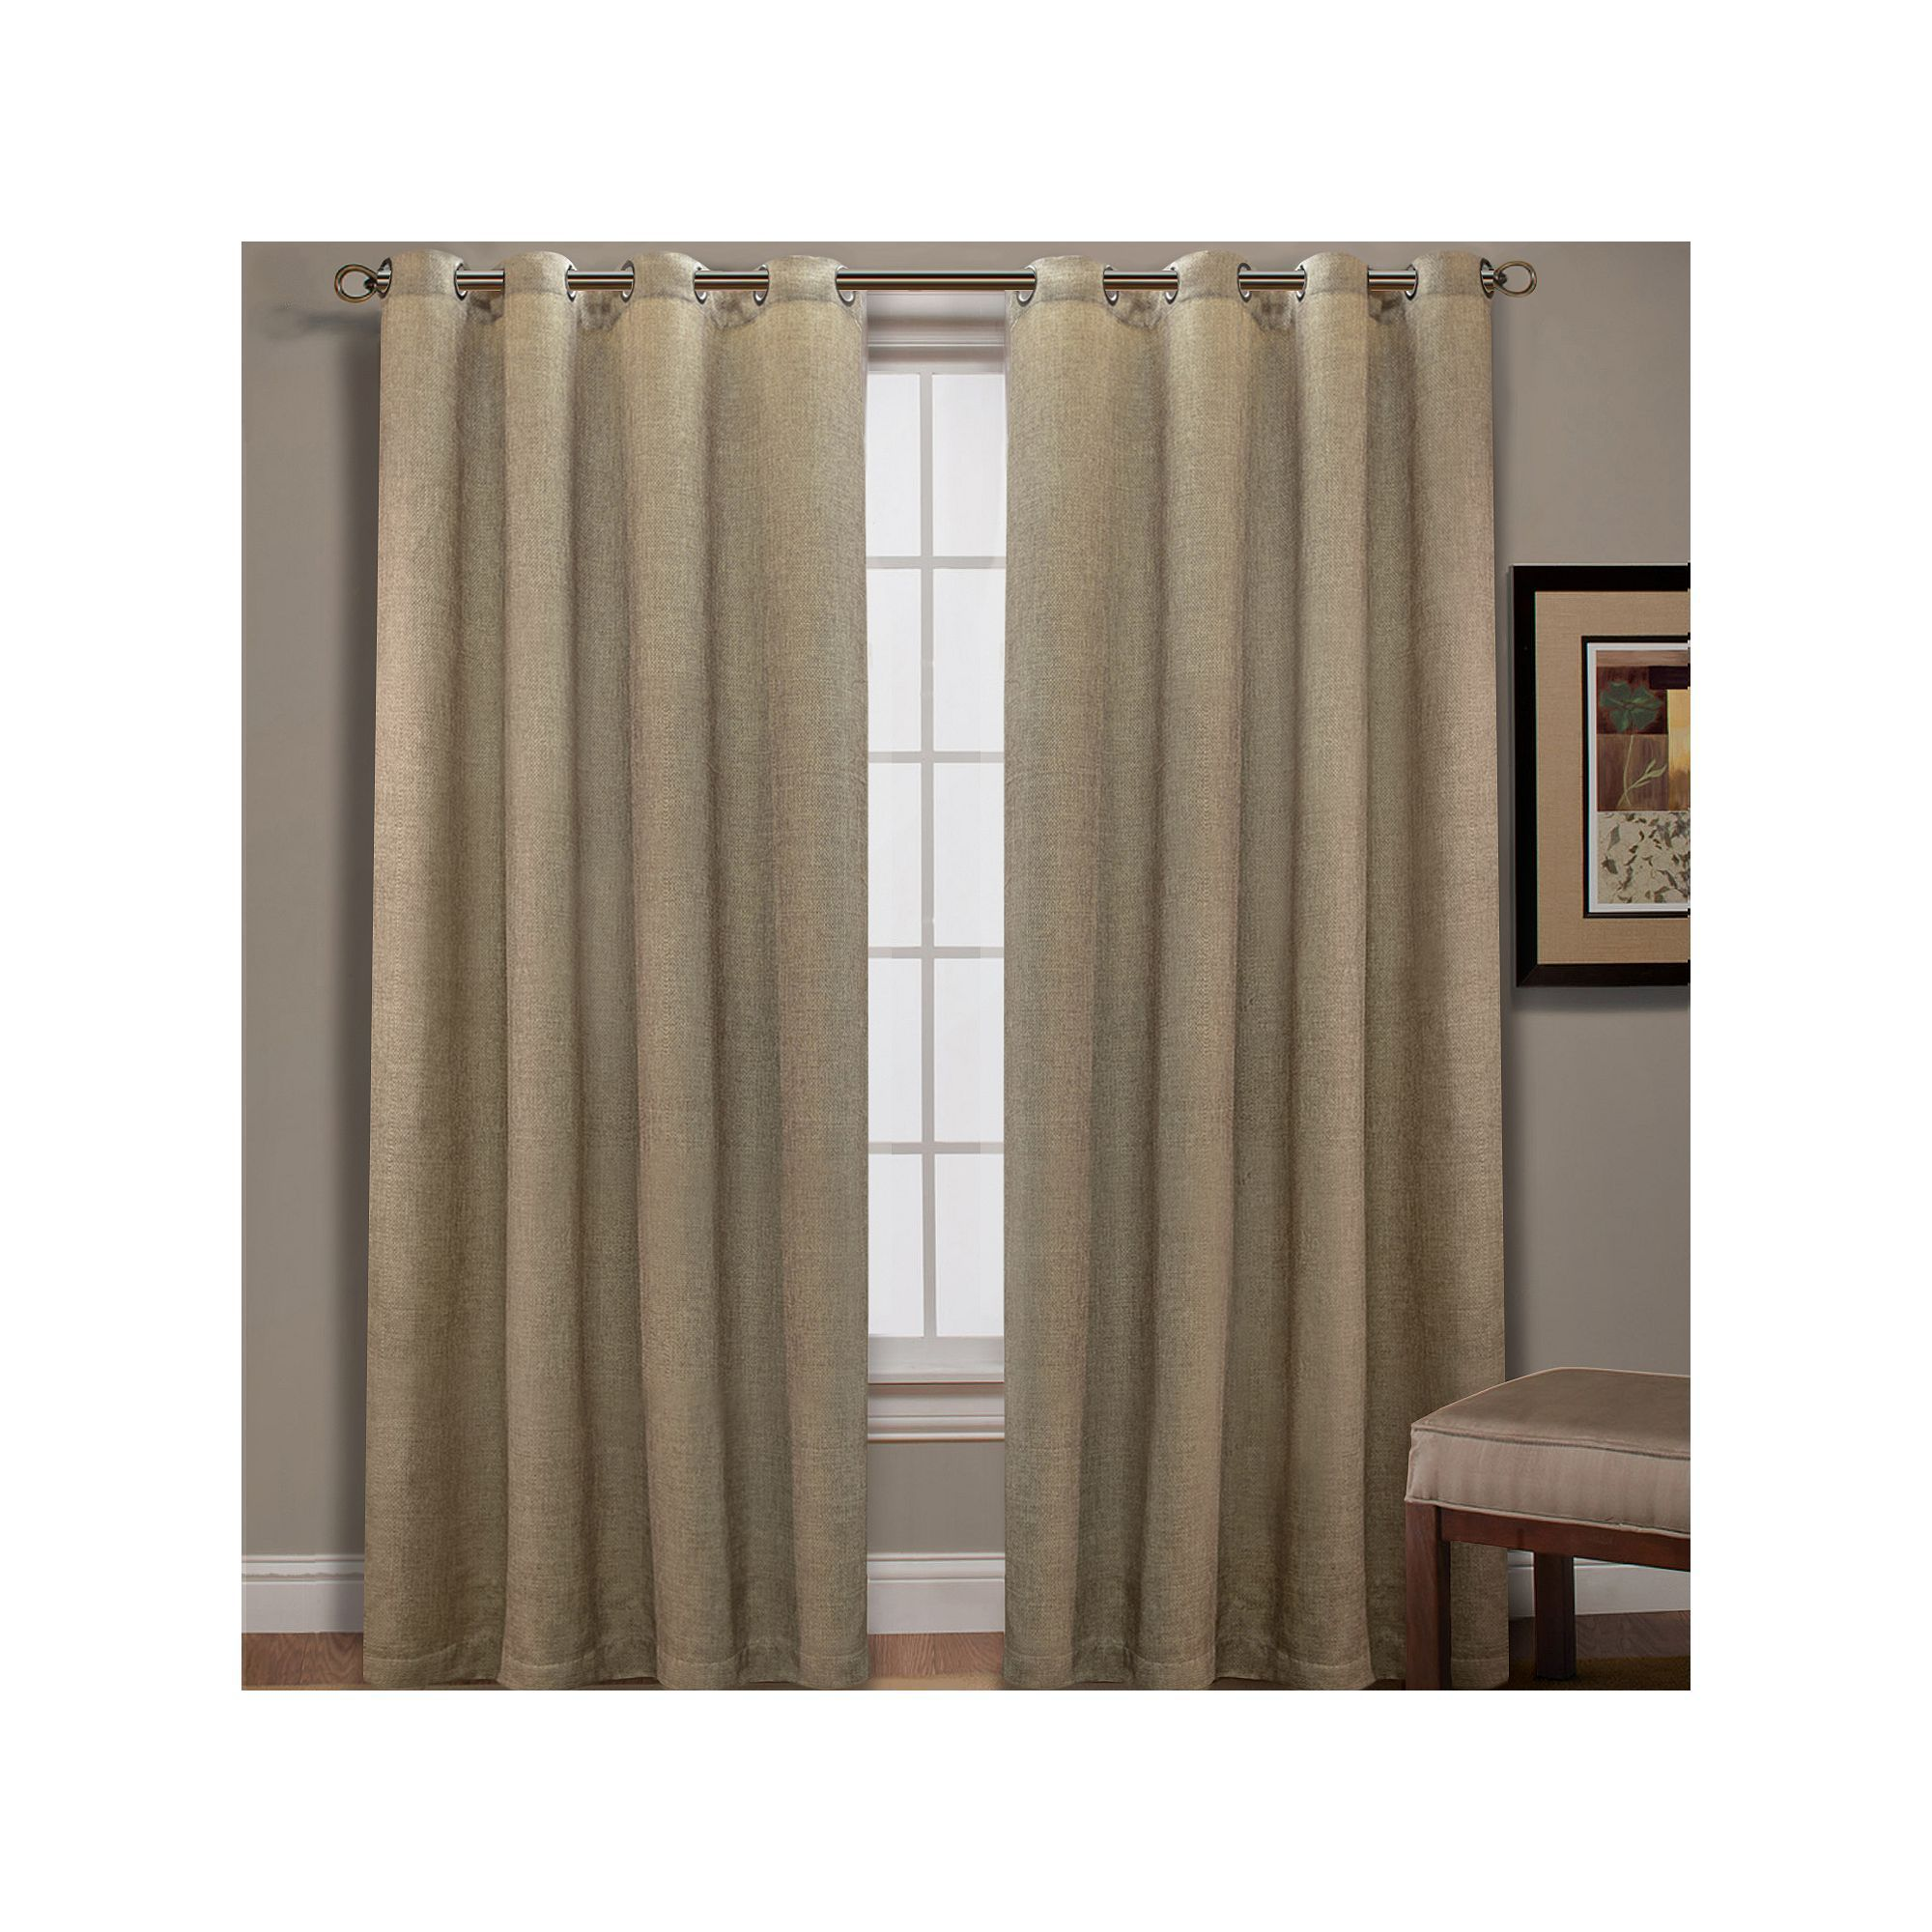 Spencer Home Decor Mika Basketweave Curtain White